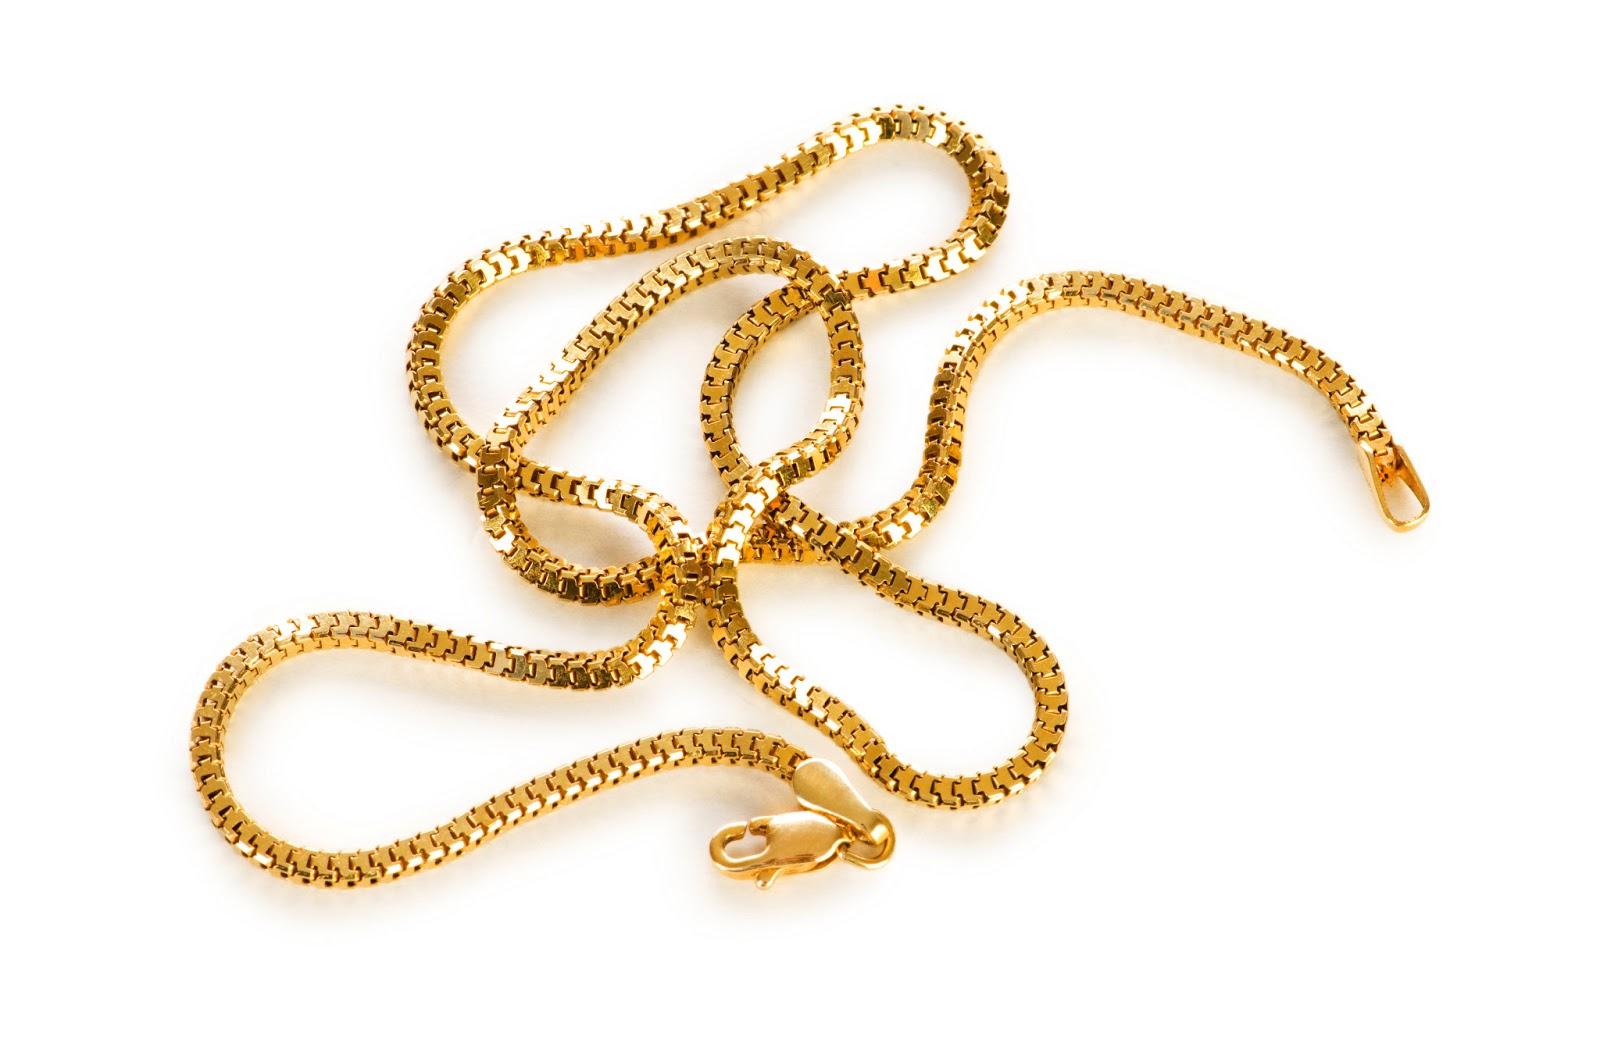 of for gold trends valuable chain chains fashion pin women jot expensive cute latest jewlery